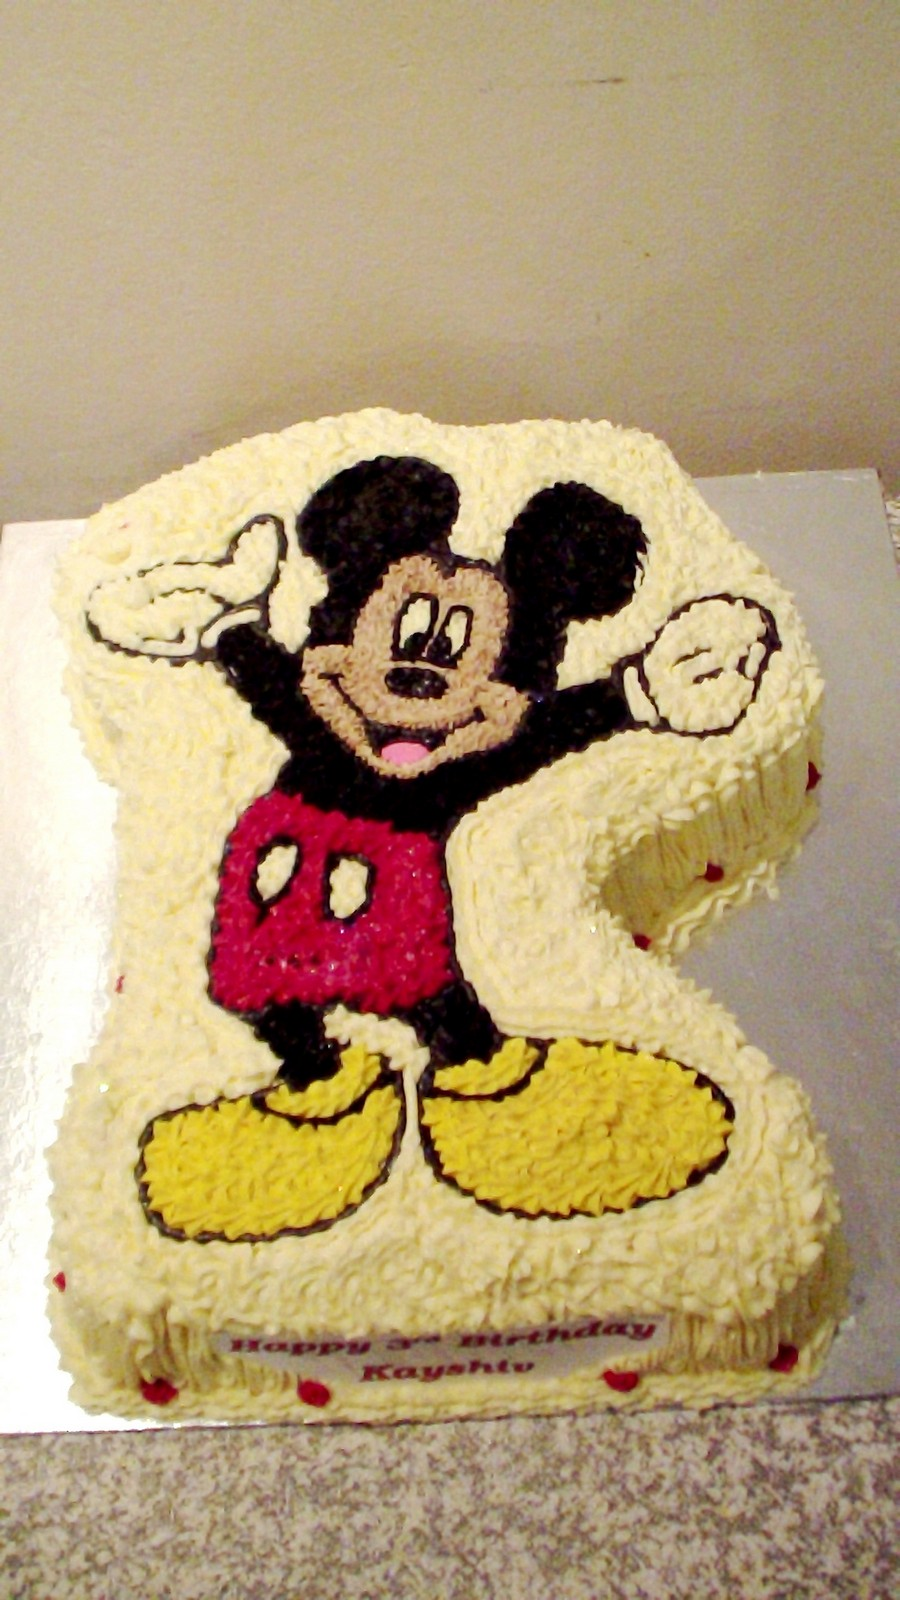 Cake And Decor 1220 : Design A Cake - Mickey & Minnie